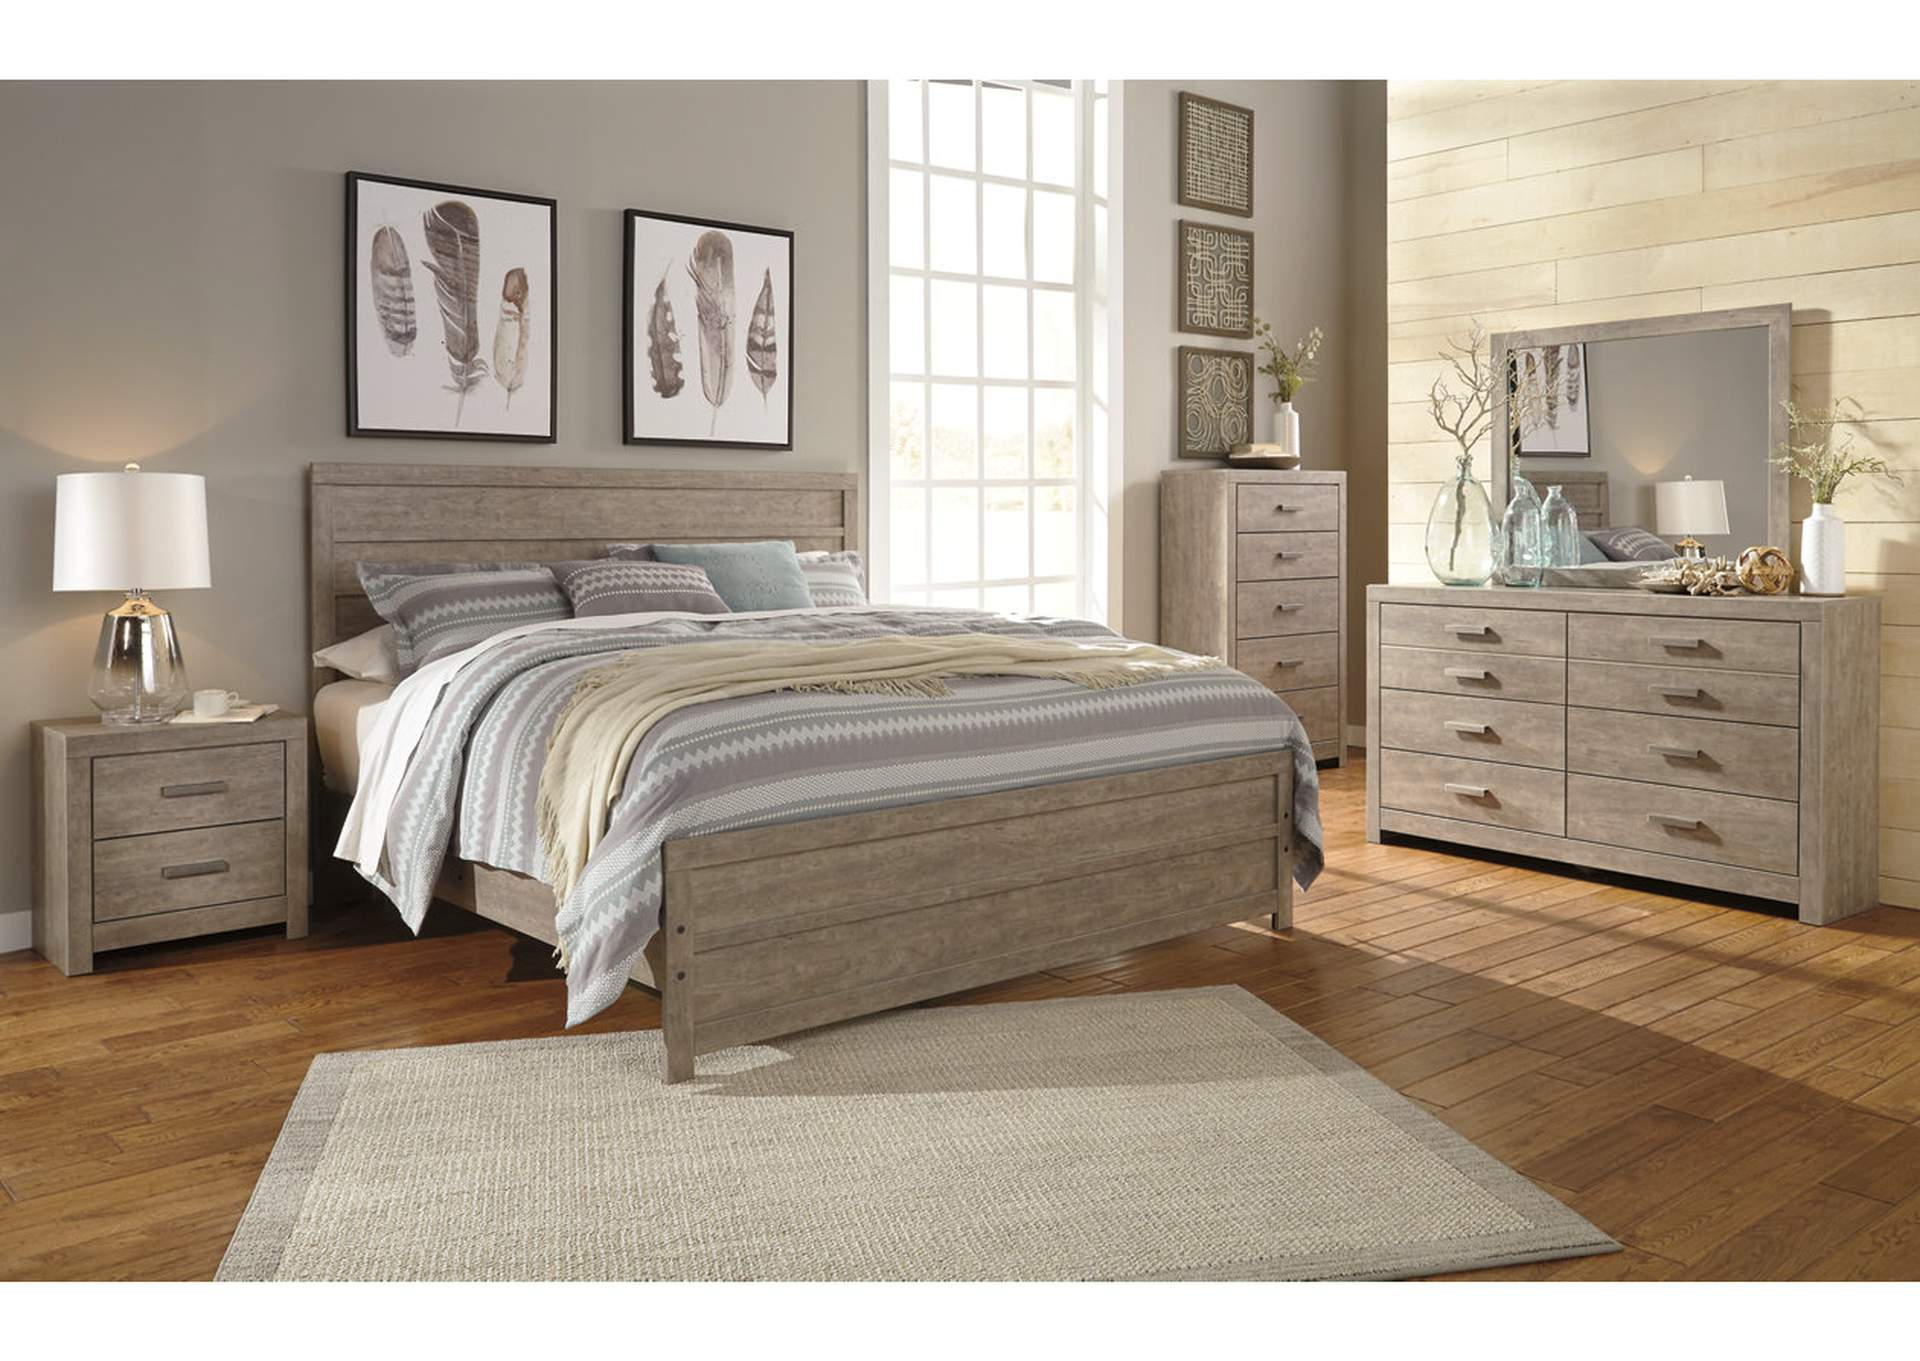 Culverbach Gray King Panel Bed w/Dresser, Mirror & Nightstand,Signature Design By Ashley